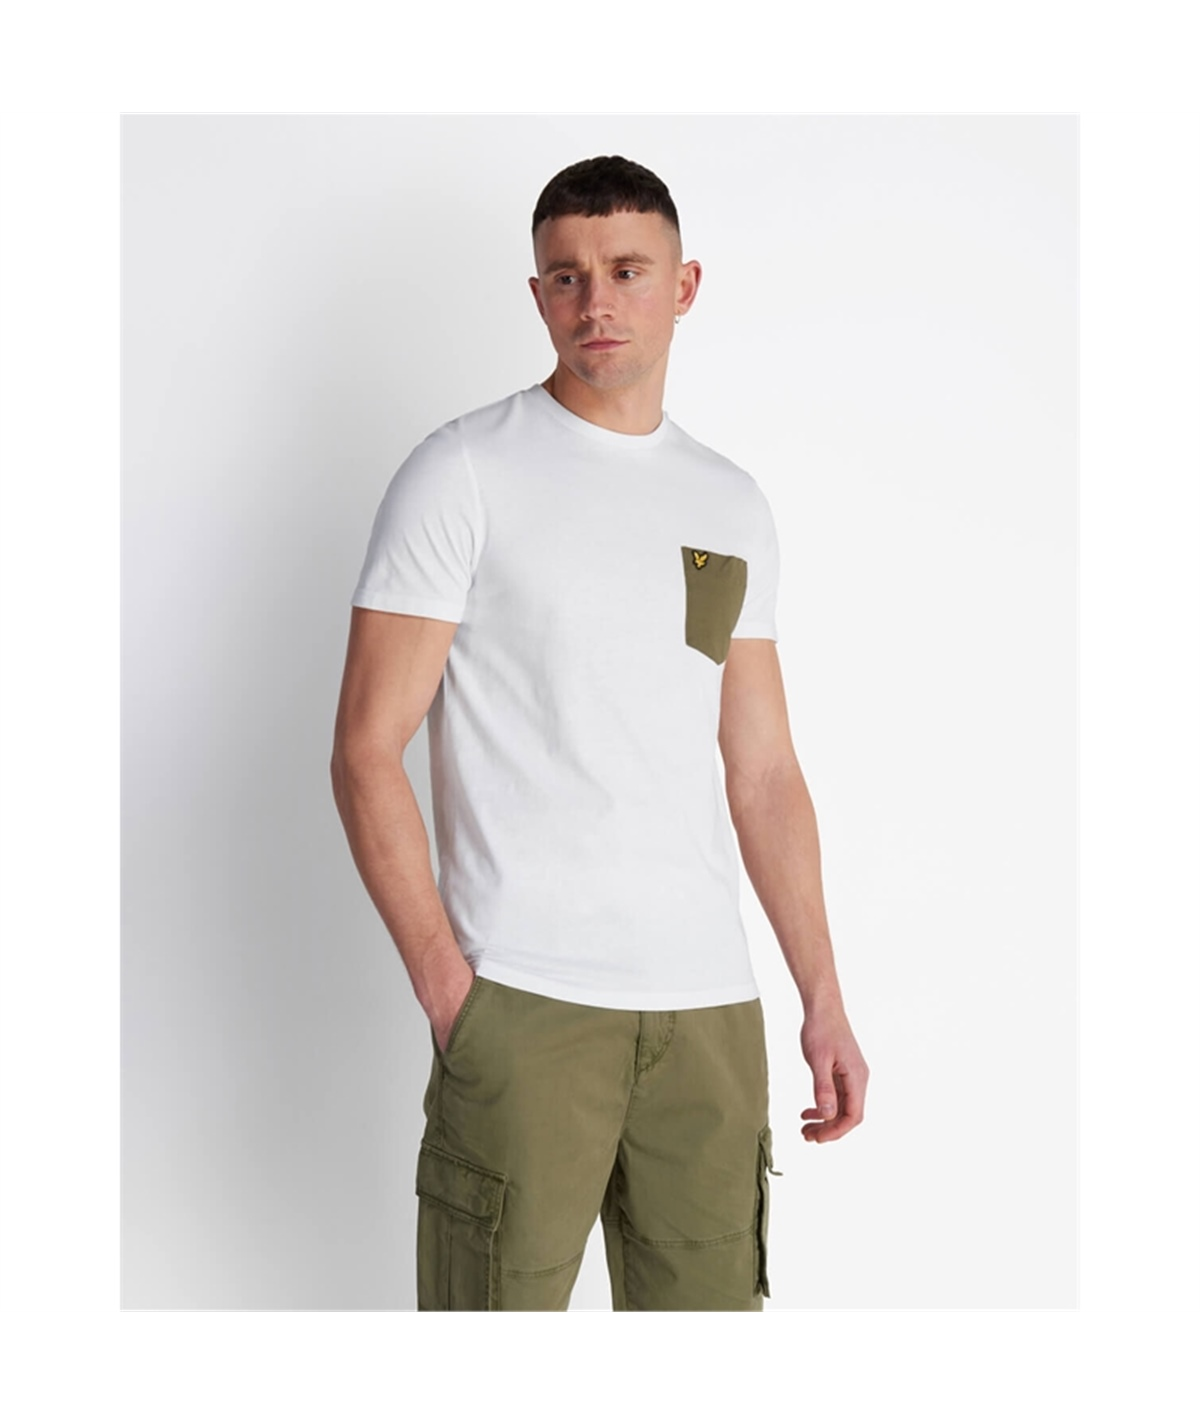 TS831V_Z828 T-SHIRT LYLE SCOTT